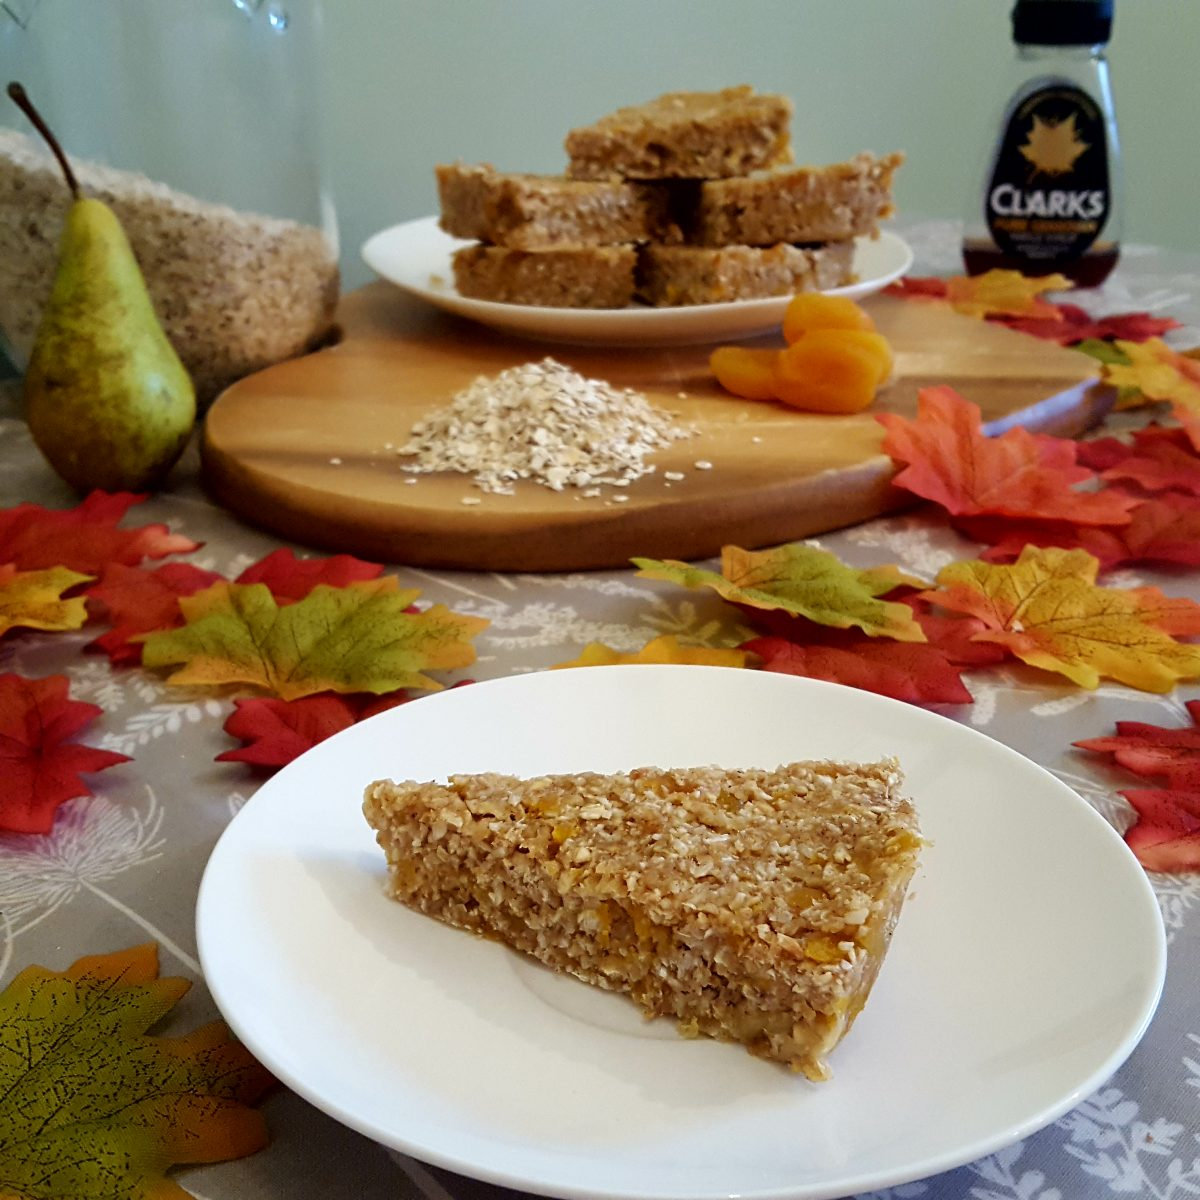 Spiced apple and pear slice